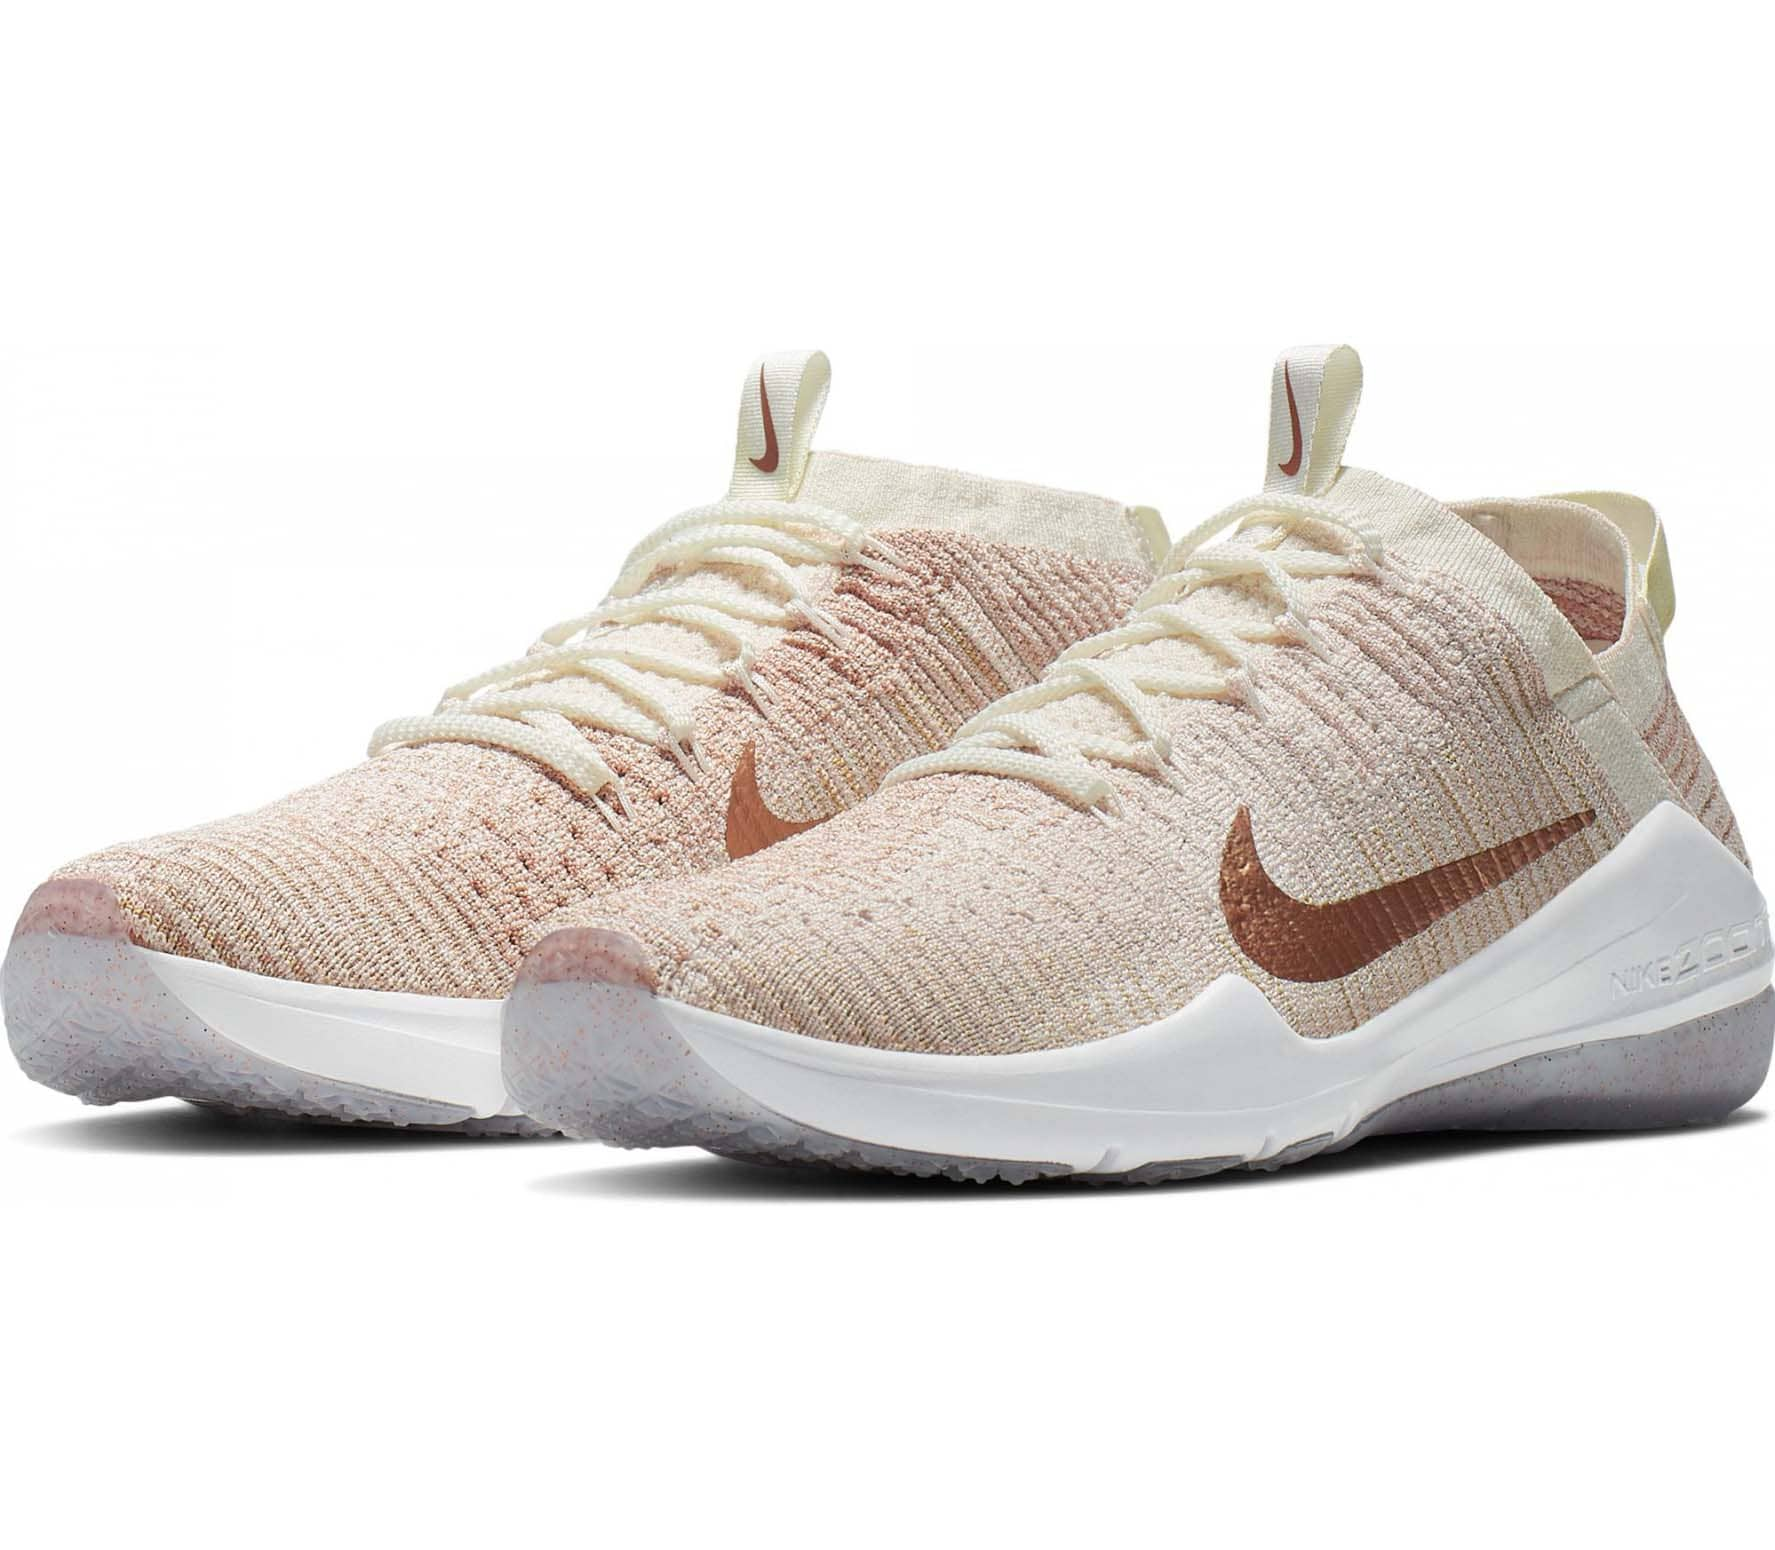 Nike Air Zoom Fearless Flyknit 2 Metallic Women